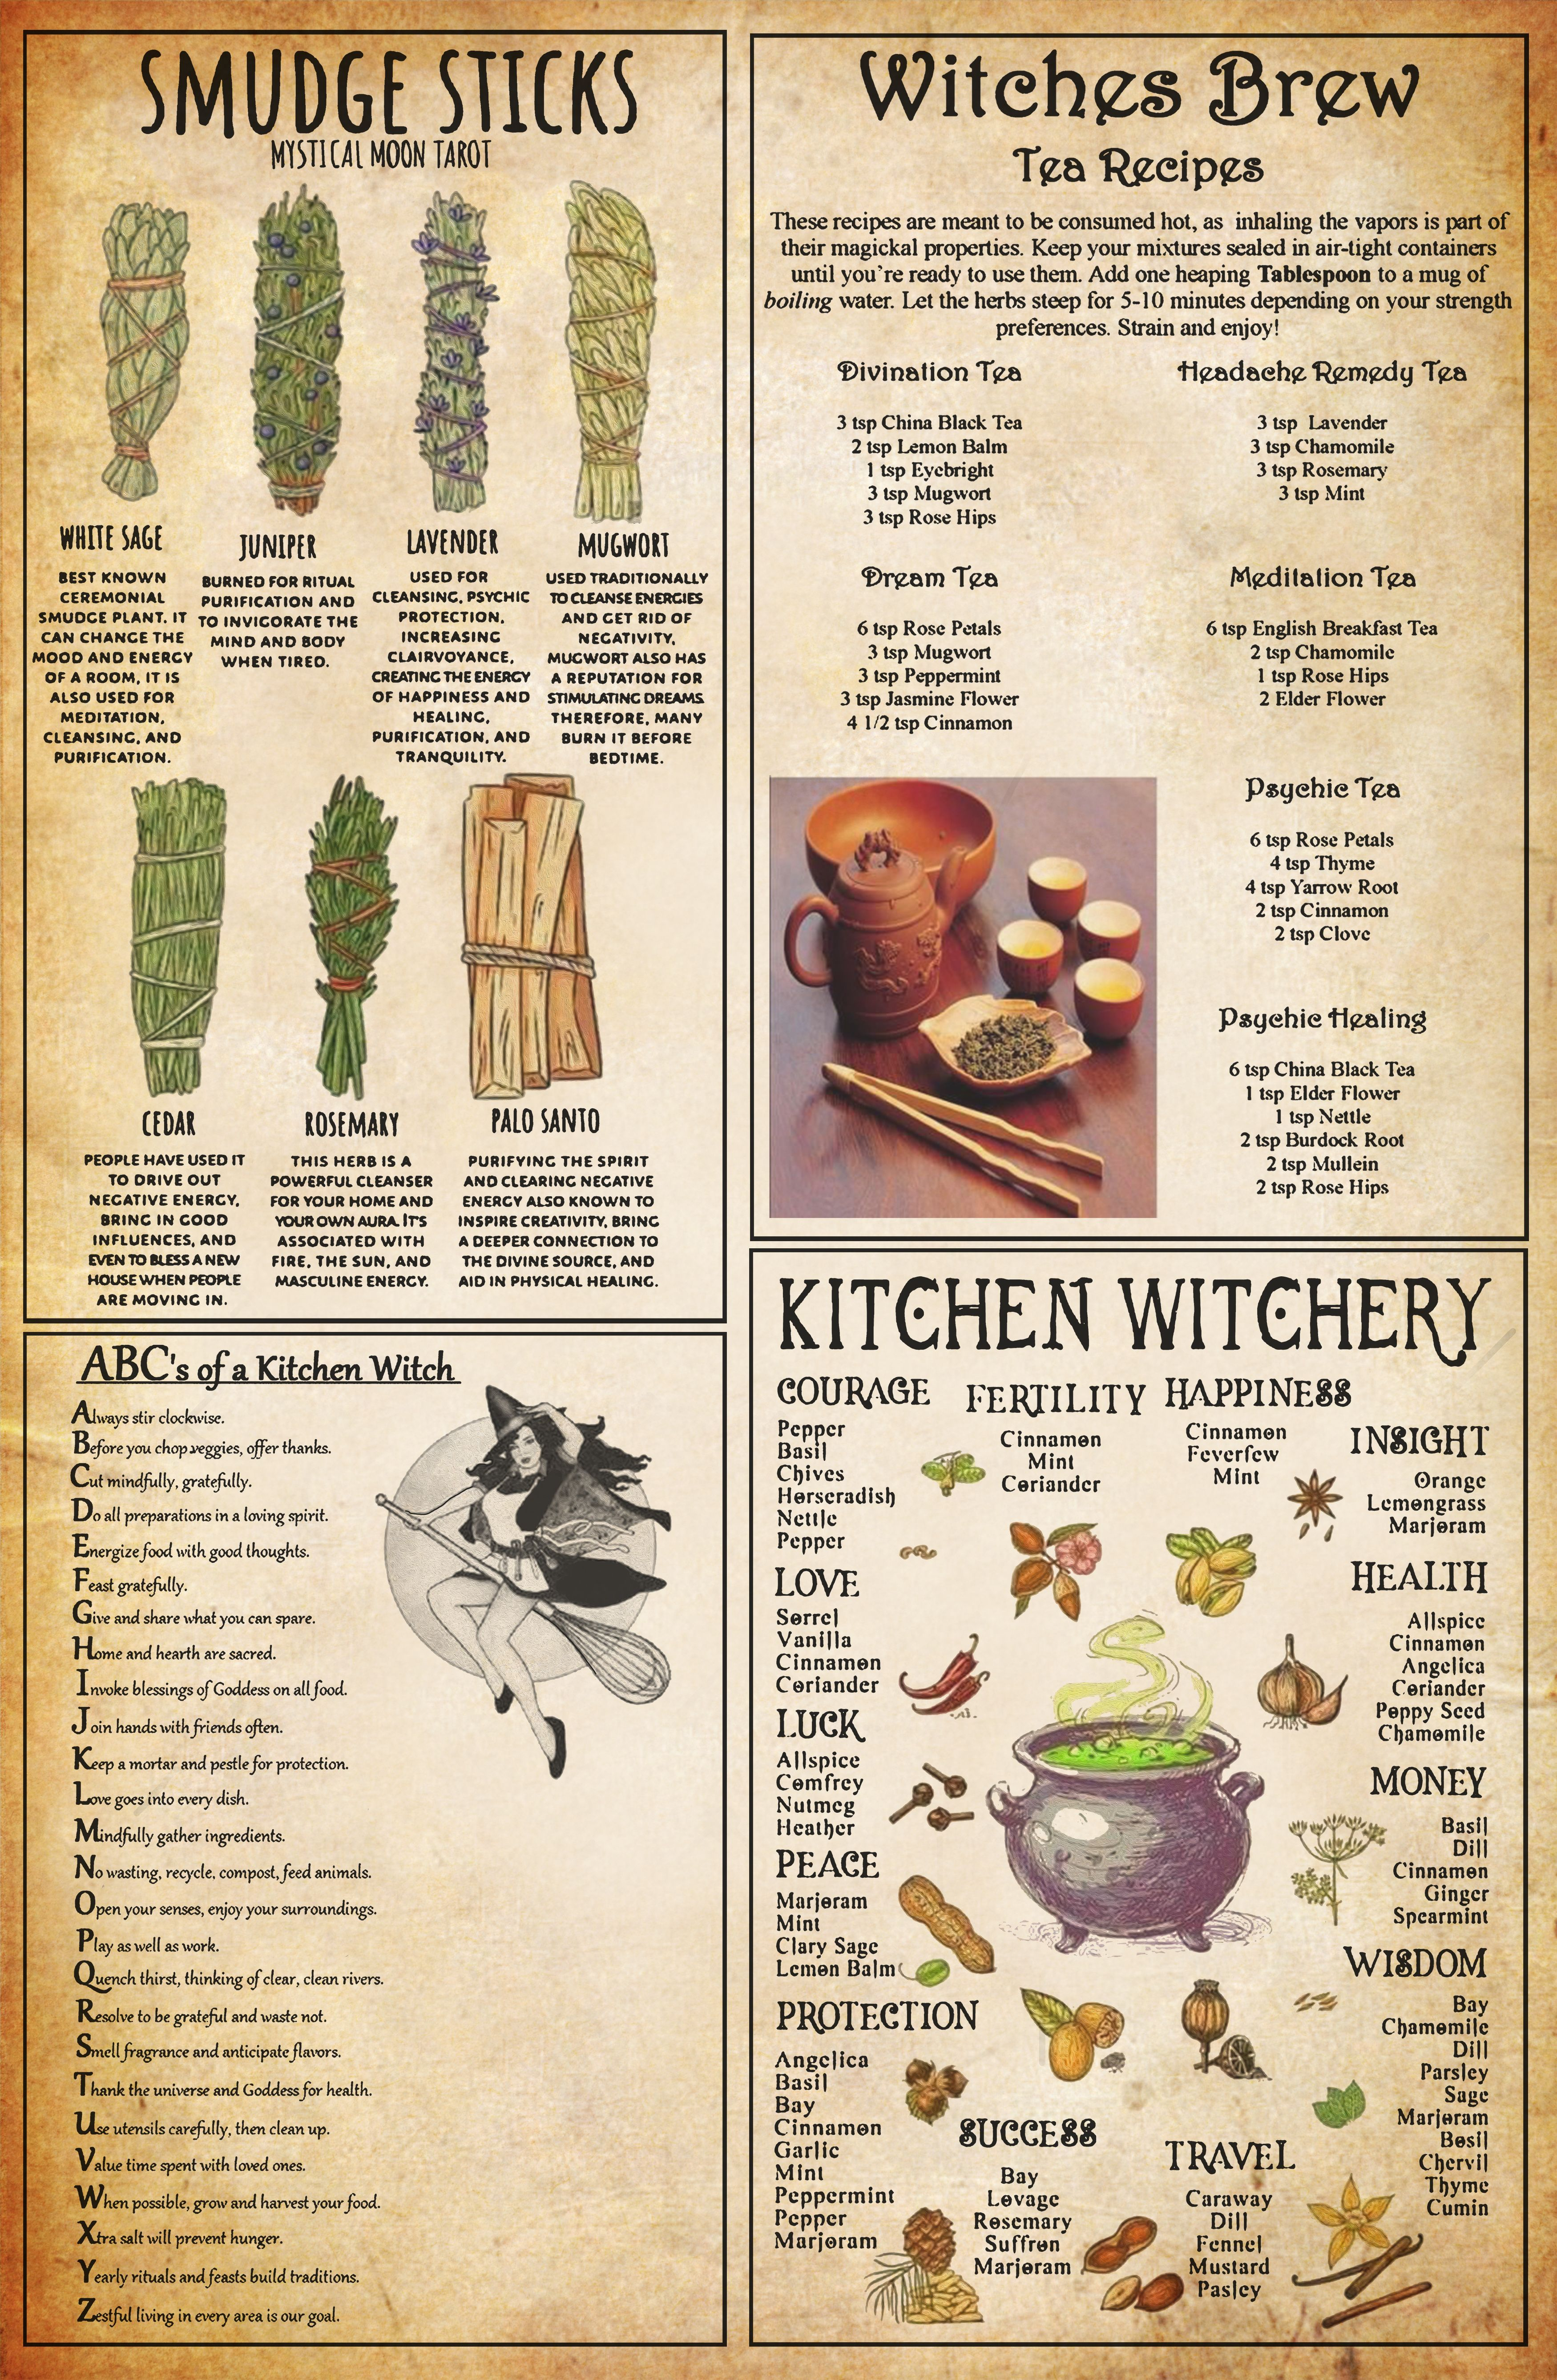 Kitchen Witchcraft Knowledge Poster Witches Brew Tea Recipes Kitchen Witchery Witchcraft Spell Books Witch Spell Book Witch Books